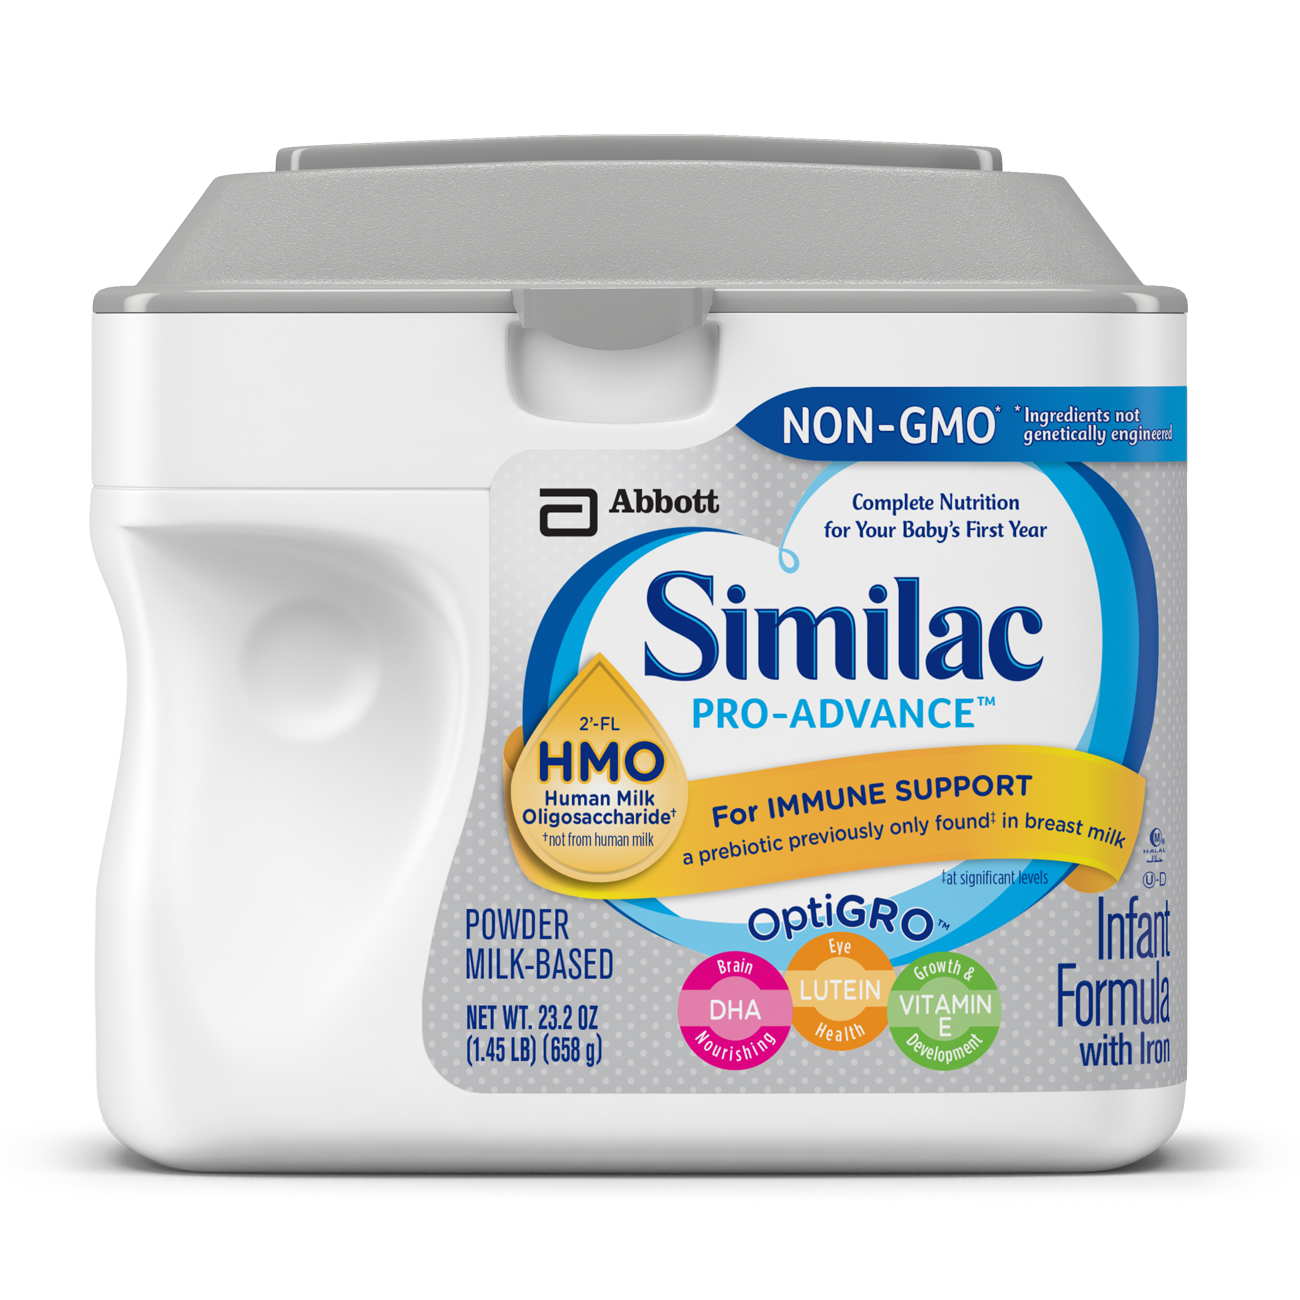 Similac Pro-Advance Infant Formula with 2'-FL Human Milk Oligosaccharide (HMO) for Immune Support, 23.2 ounces... by Similac